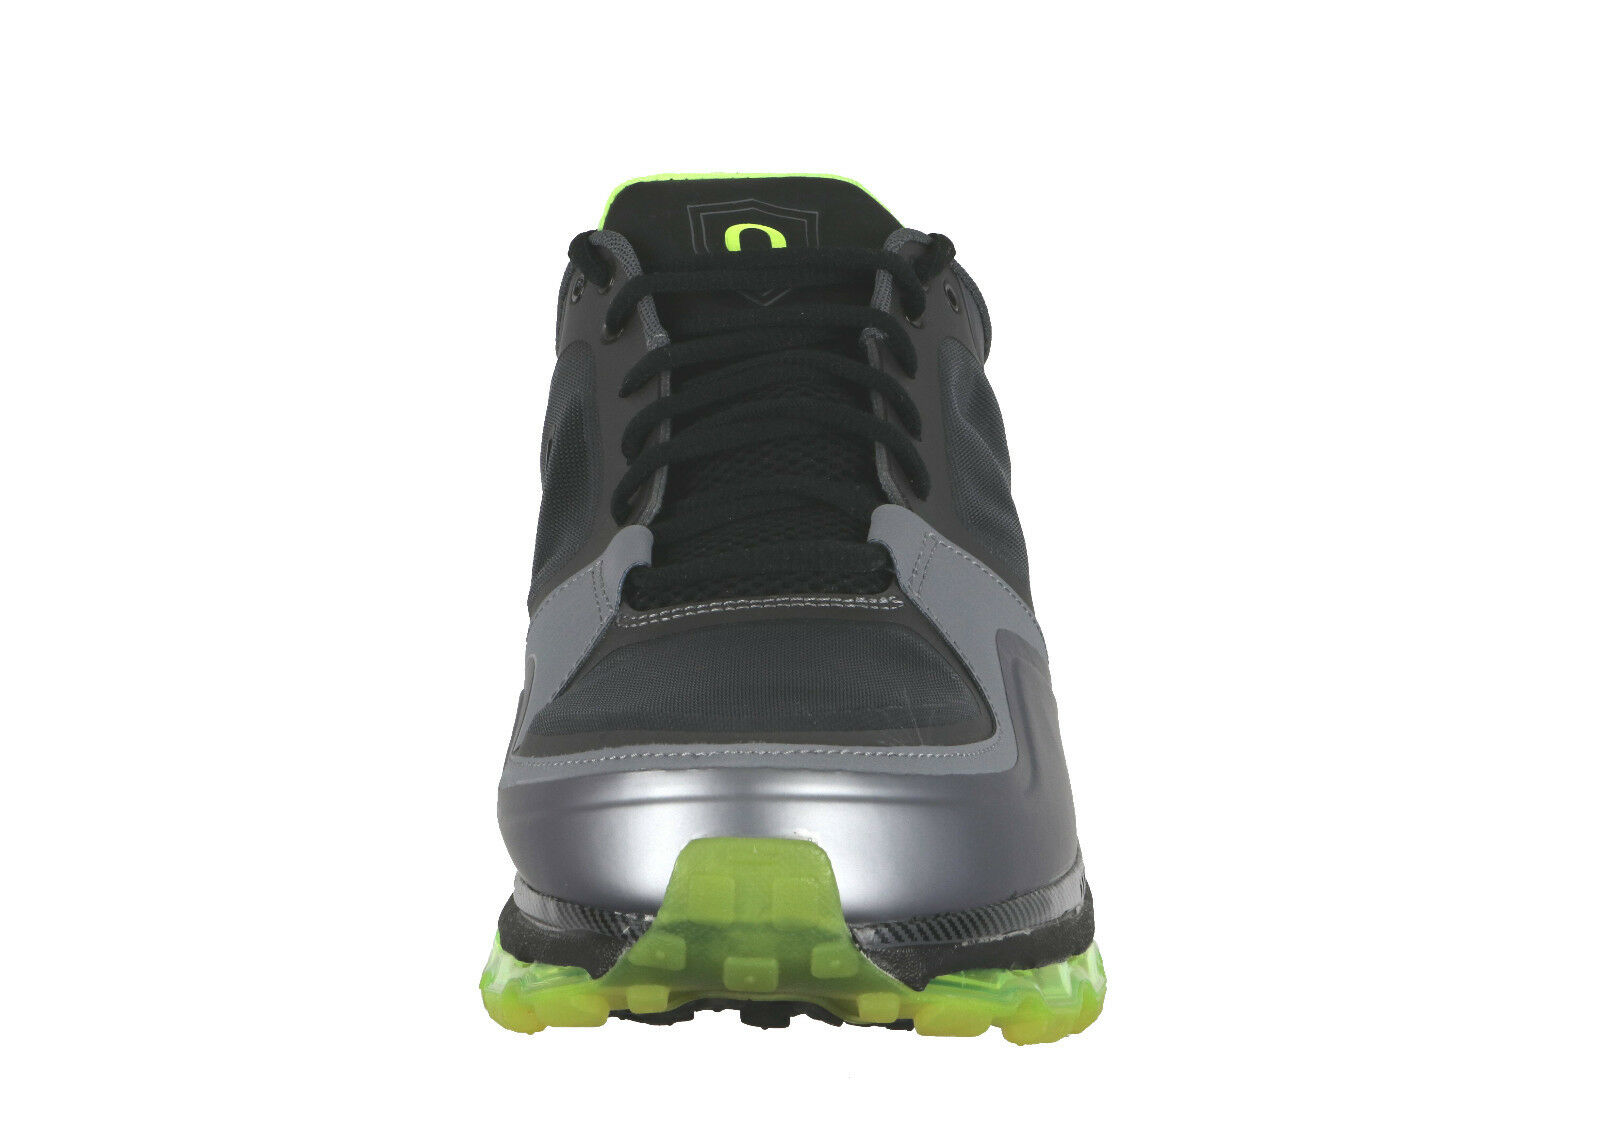 NIKE Trainer 1.3 Max Rivalry+ sz 15 Oregon Oregon Oregon Ducks Rivalry Pack Promo Sample PE LE f469df